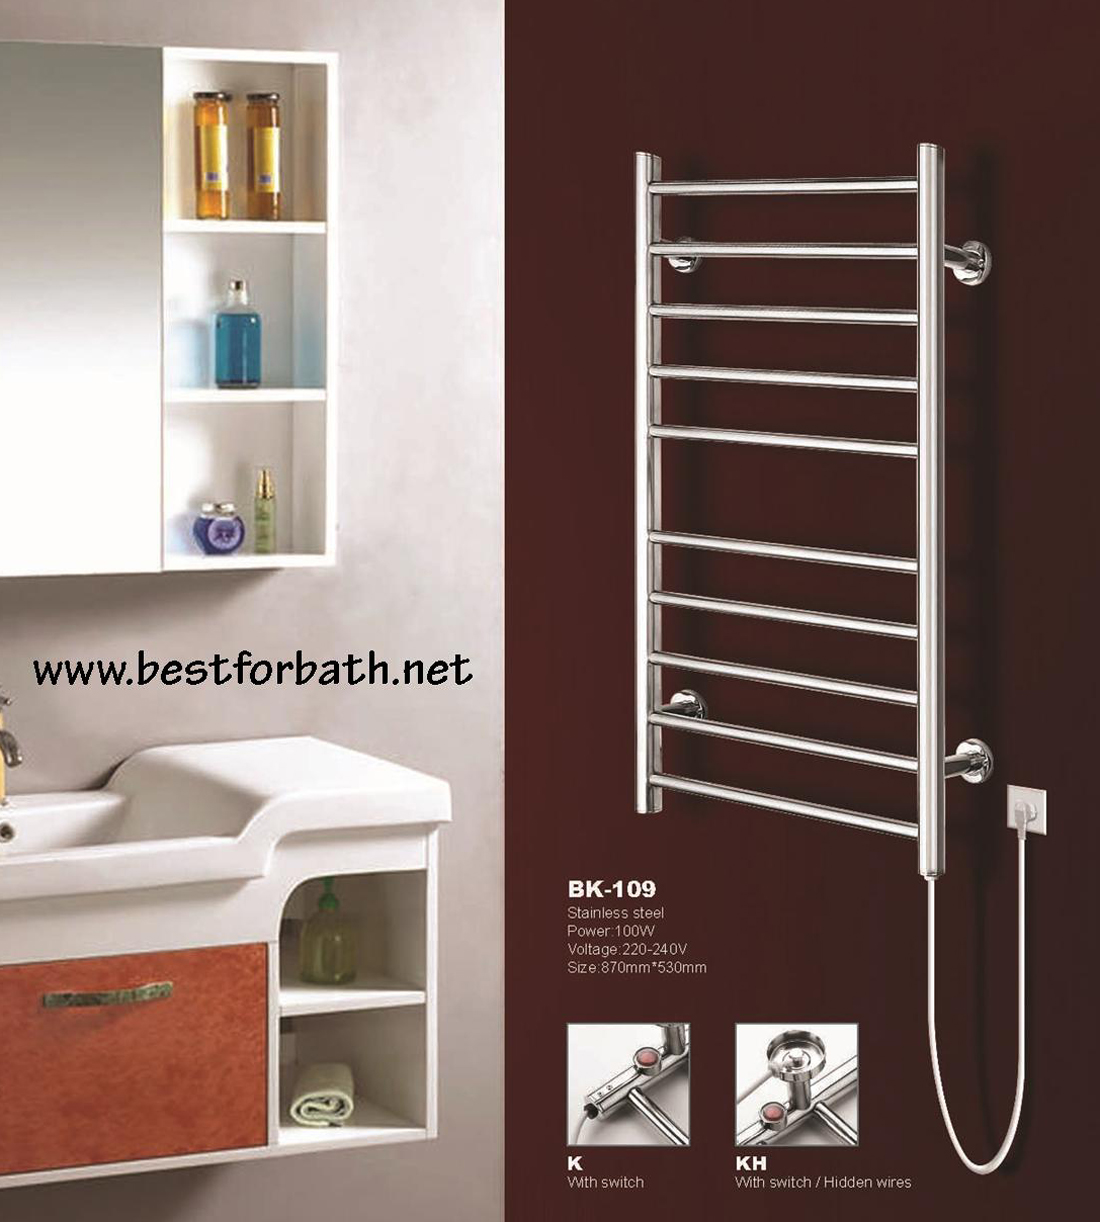 Oil filled electric towel rails for bathrooms -  Wall Mount Electric Towel Warmer Bk 109 Image 6